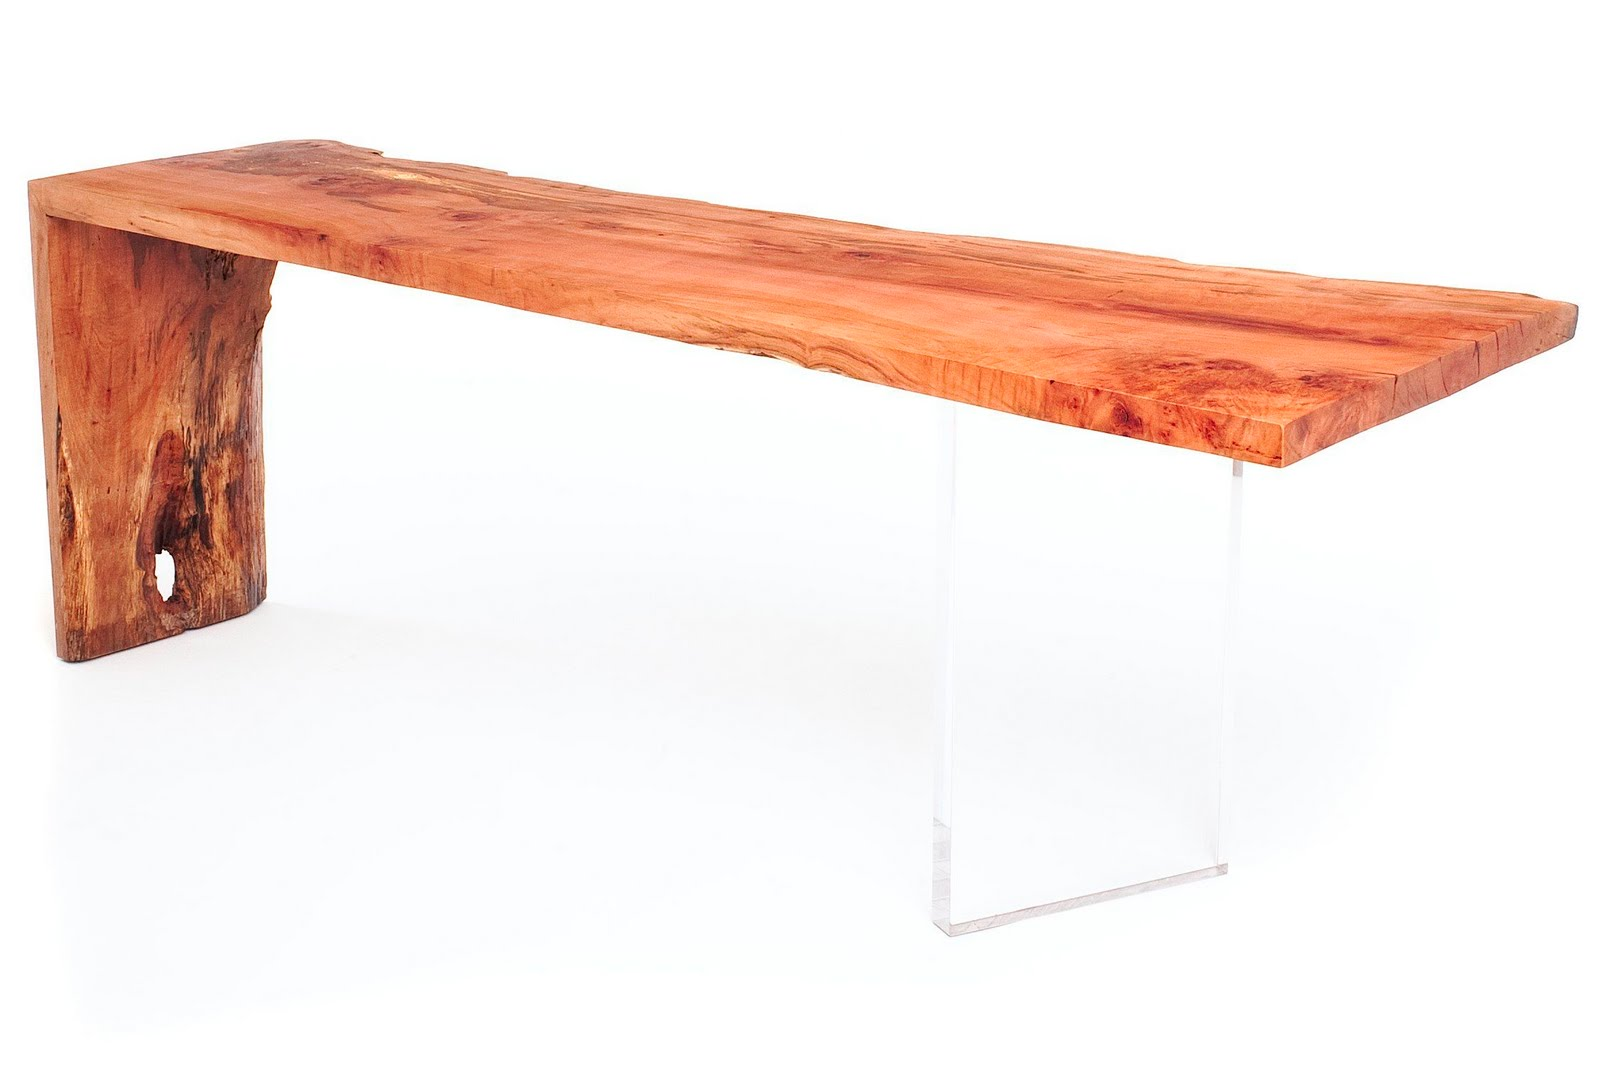 Rotsen furniture,brazilian,organic,eco conscious,eco friendly,rare hardwoods,unique furniture,reclaimed wood,reclaimed wood furniture,reclaimed grapia wood,reclaimed tamburiuva wood,salvaged imbuia wood,reclaimed ibiocai wood,floating console,salvaged muracatiara wood,reclaimed cinimon wood,maienza wilson,Globally Gorgeous,Wow Boyz,coffee table,interior designer,eco luxury,interior design,interior furnishings,unique design accessories,sale,avant gallery